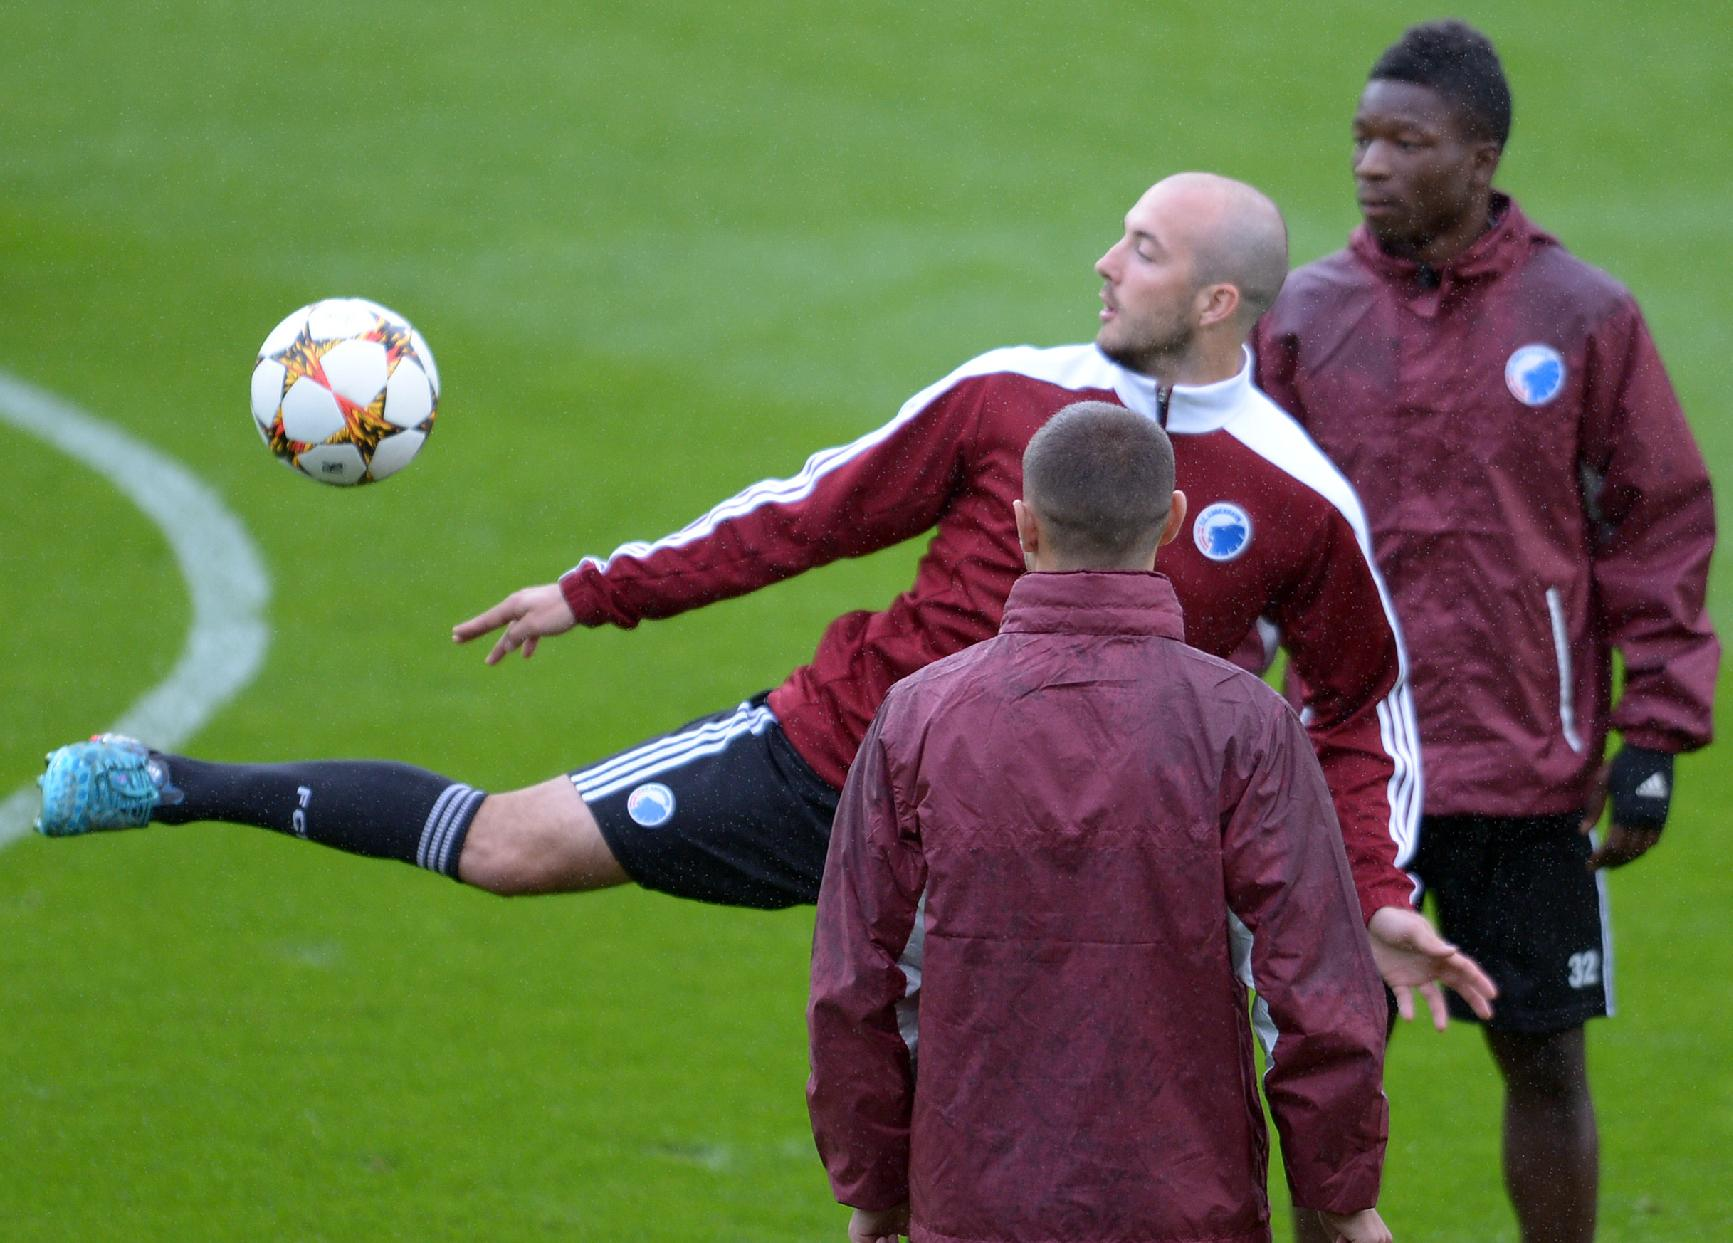 Copenhagen's   Steve Ridder plays the ball during a training session in Leverkusen, Germany, Tuesday Aug. 26, 2014. Bayer Leverkusen will play FCCopenhagen during a second leg  Champions League play-off  soccer match Wednesday